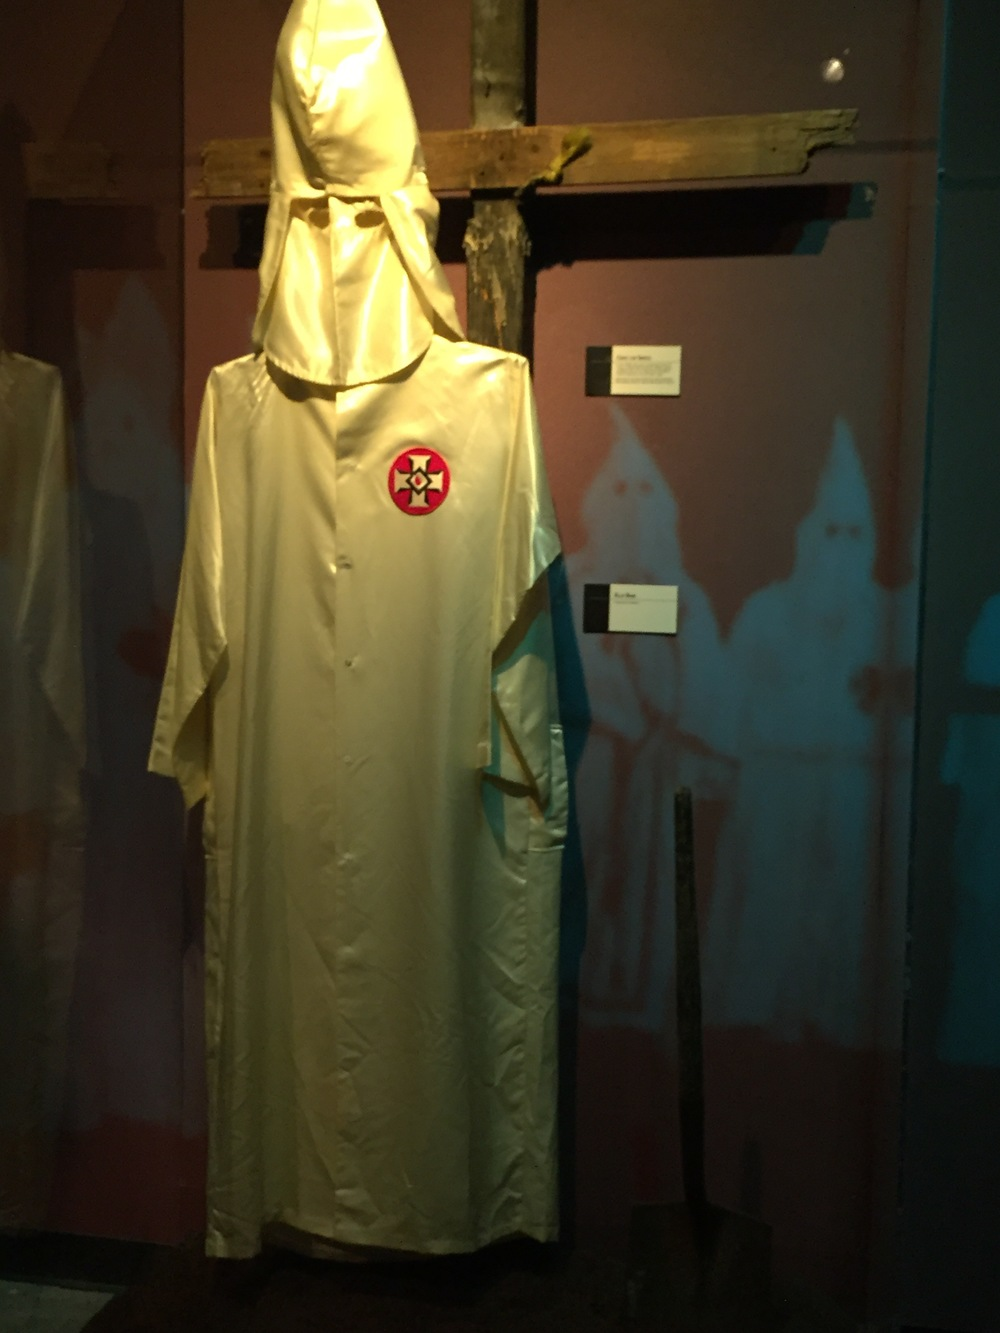 Klan Robe at the Civil Rights Museum